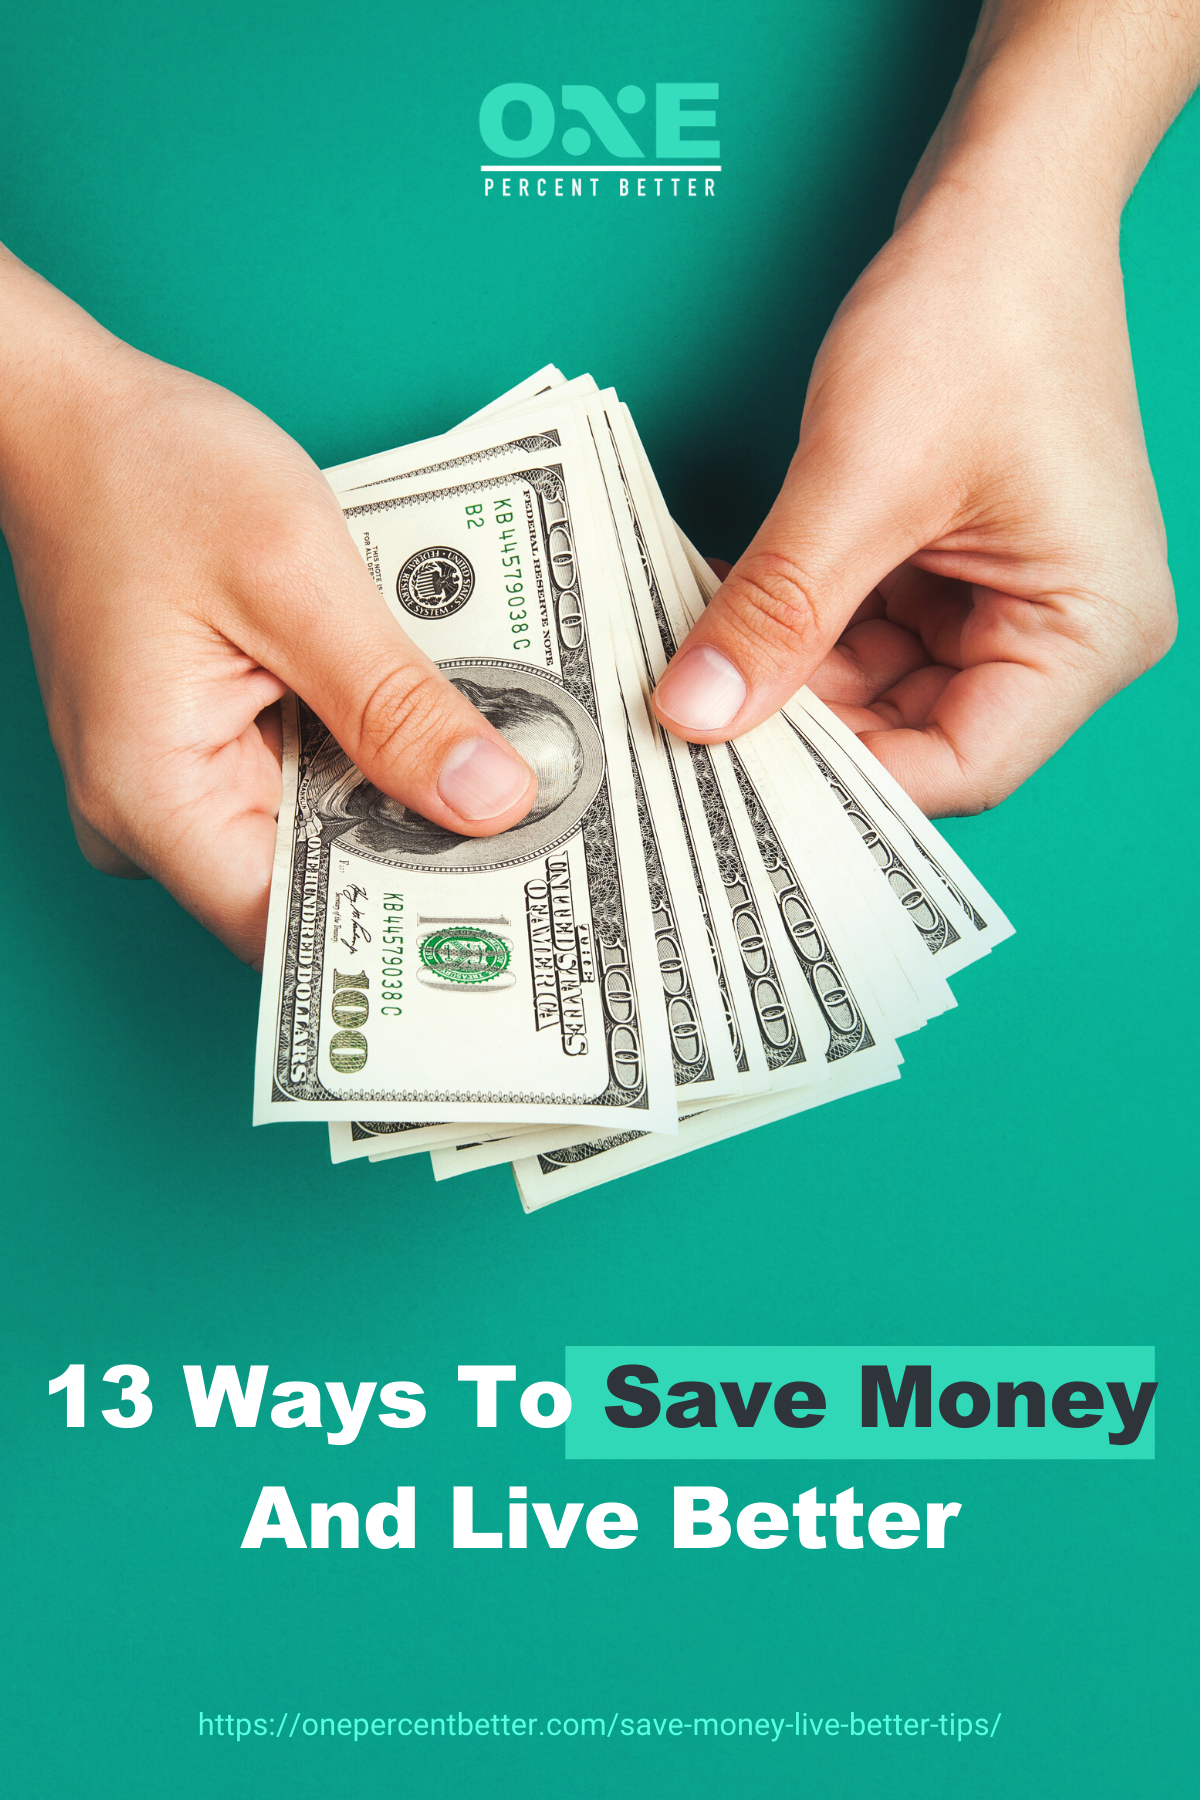 13 Ways To Save Money And Live Better https://onepercentbetter.com/save-money-live-better-tips/